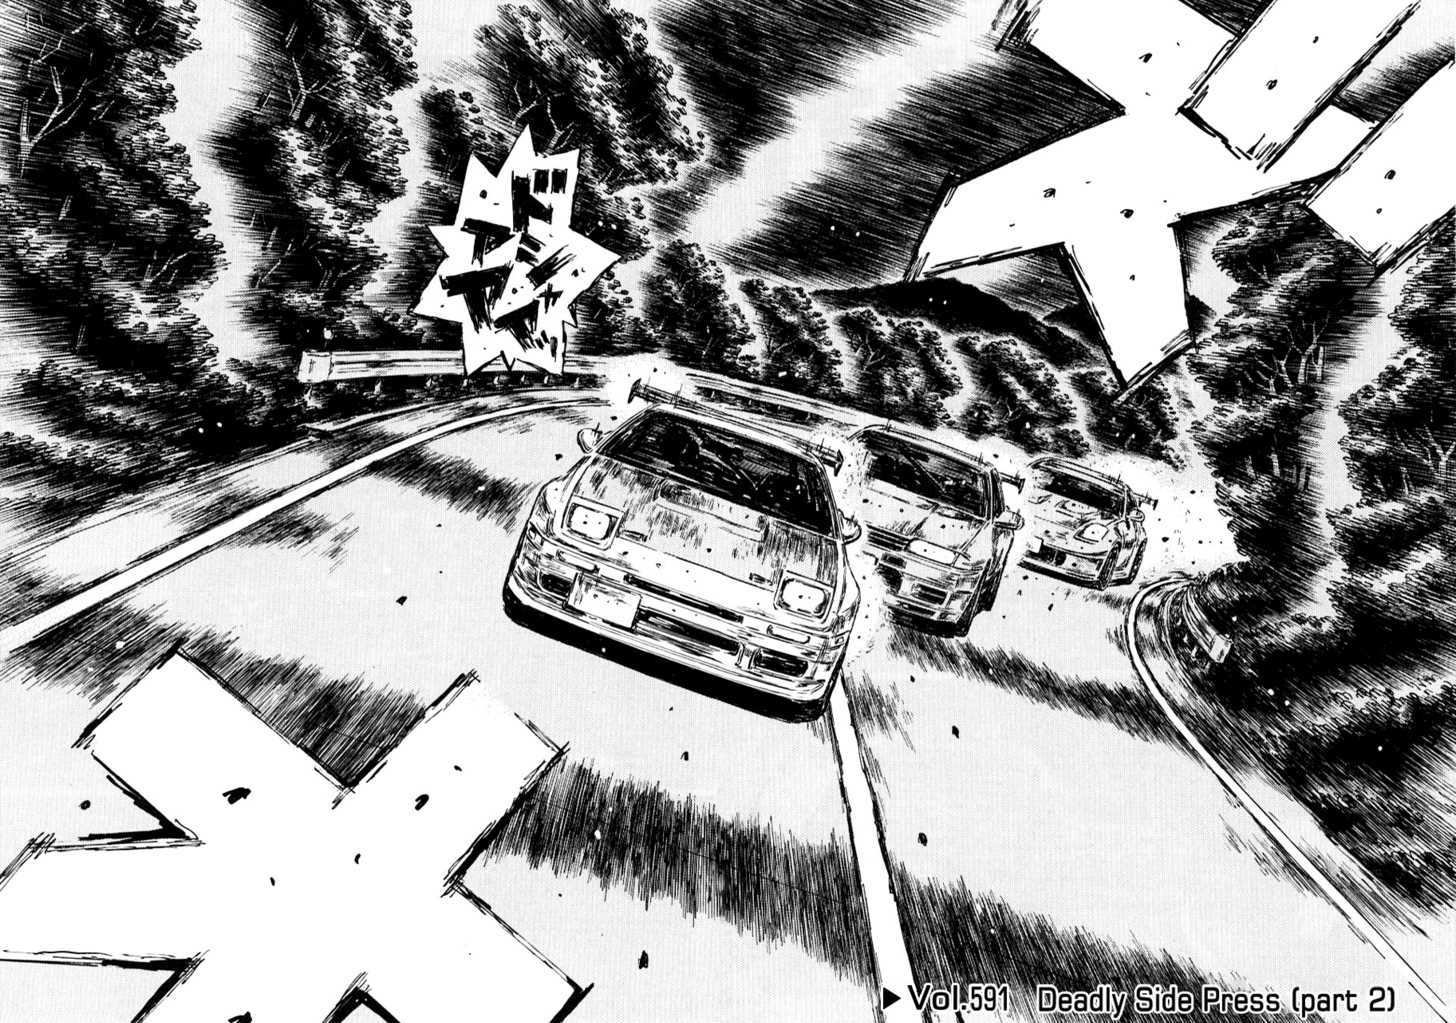 http://im.nineanime.com/comics/pic9/61/2493/61267/InitialD5910907.jpg Page 1